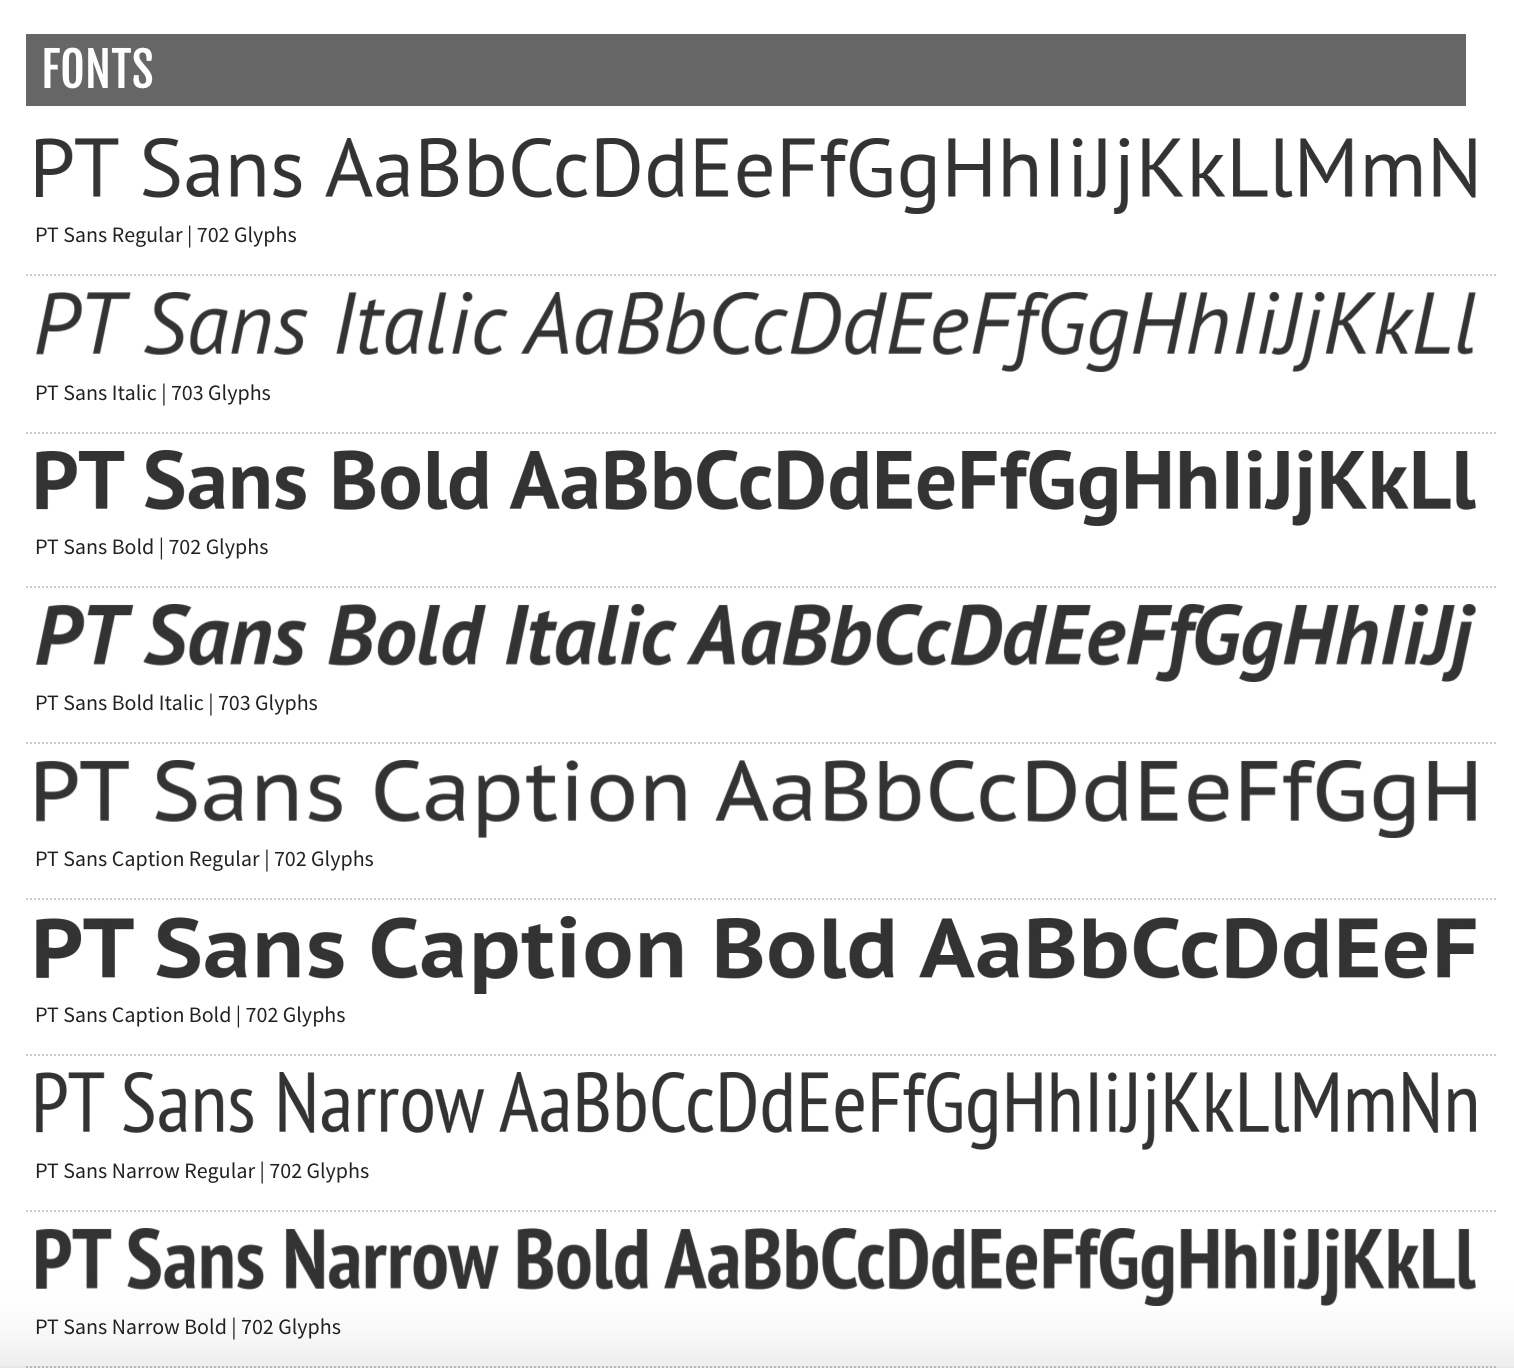 How to pick the right UI font | Webflow Blog